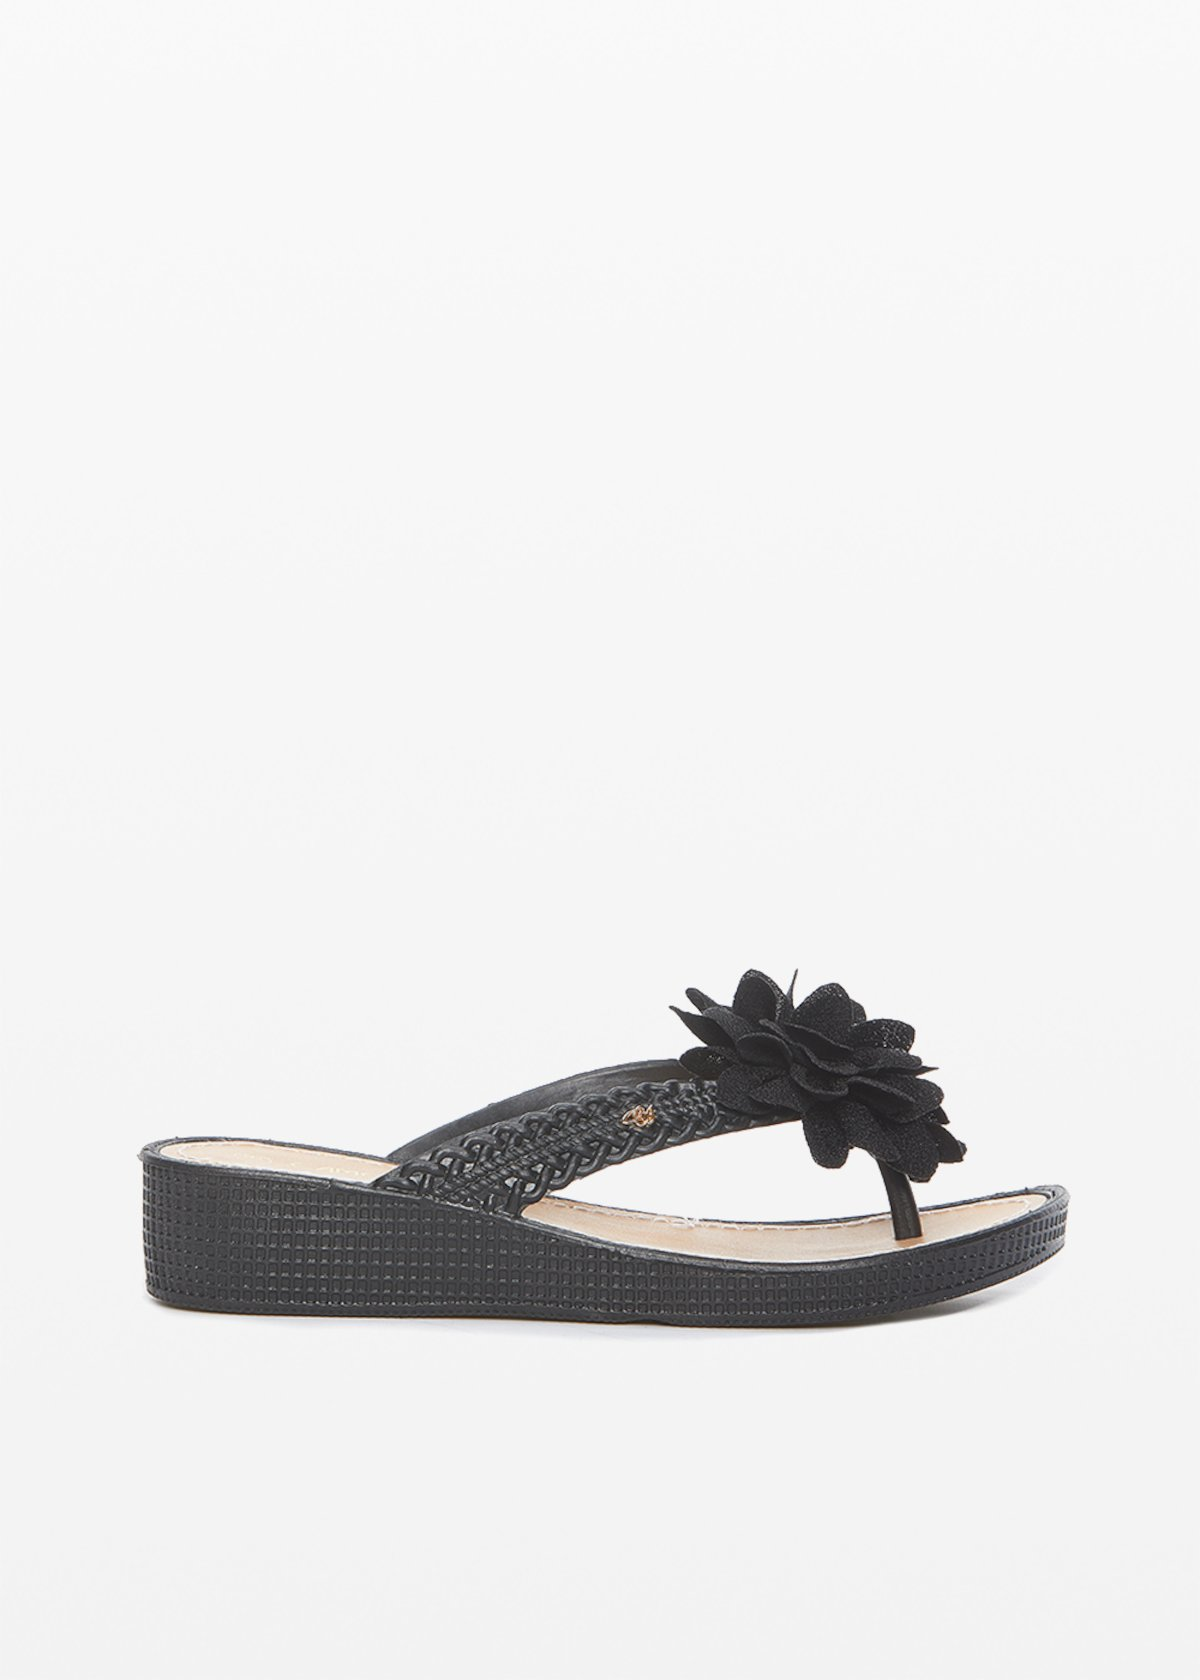 Clelia flops with flower and stones detail